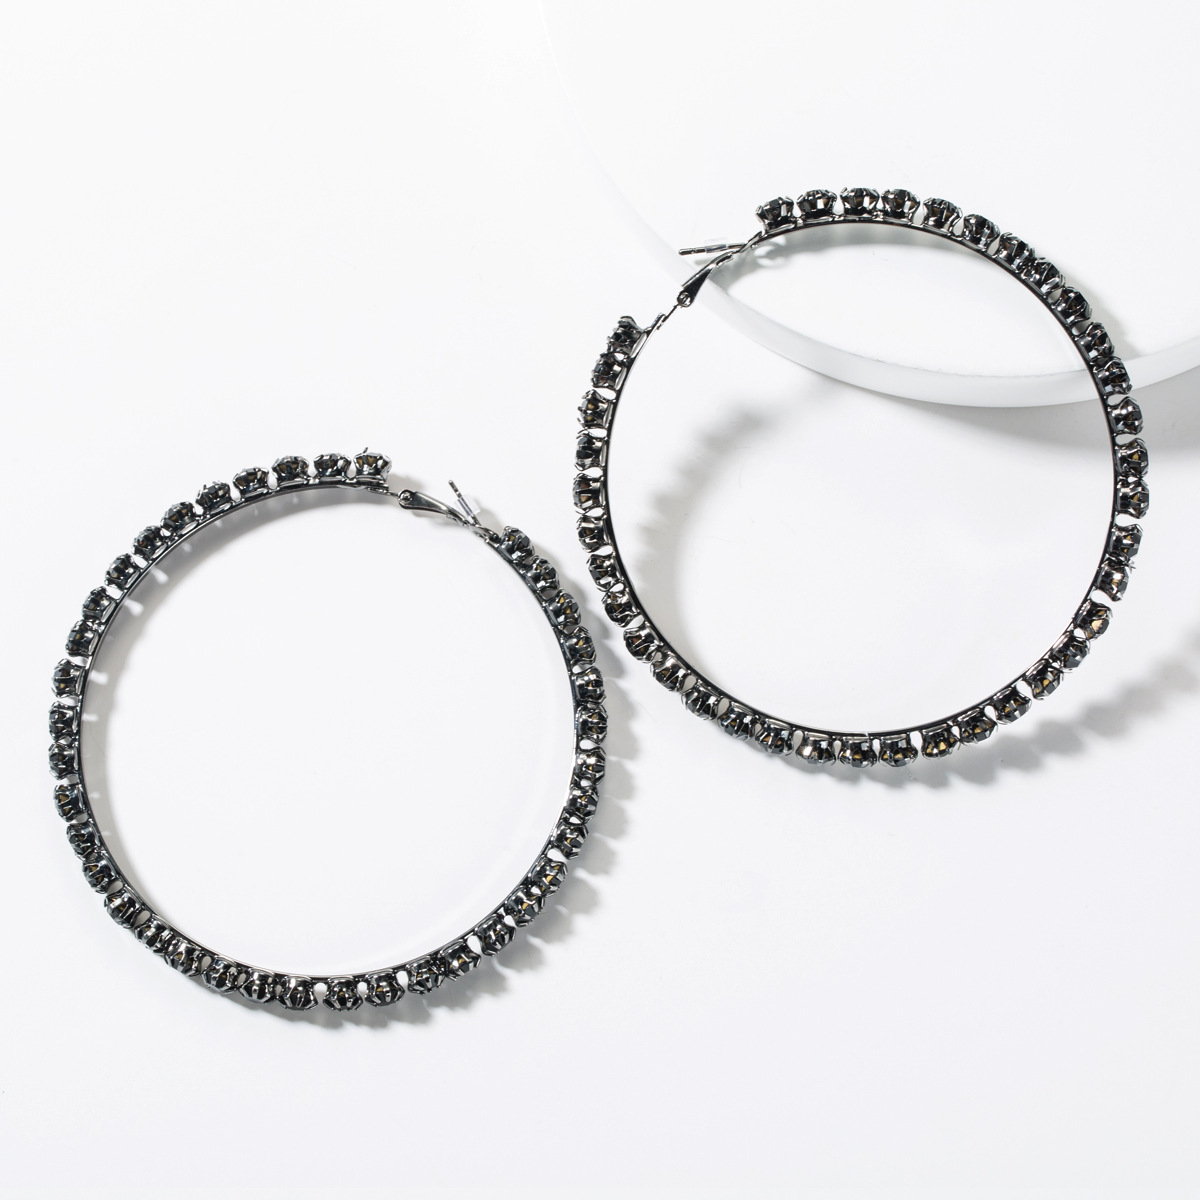 Fashion black rhinestone large circle studded hoop earrings NHJE149447